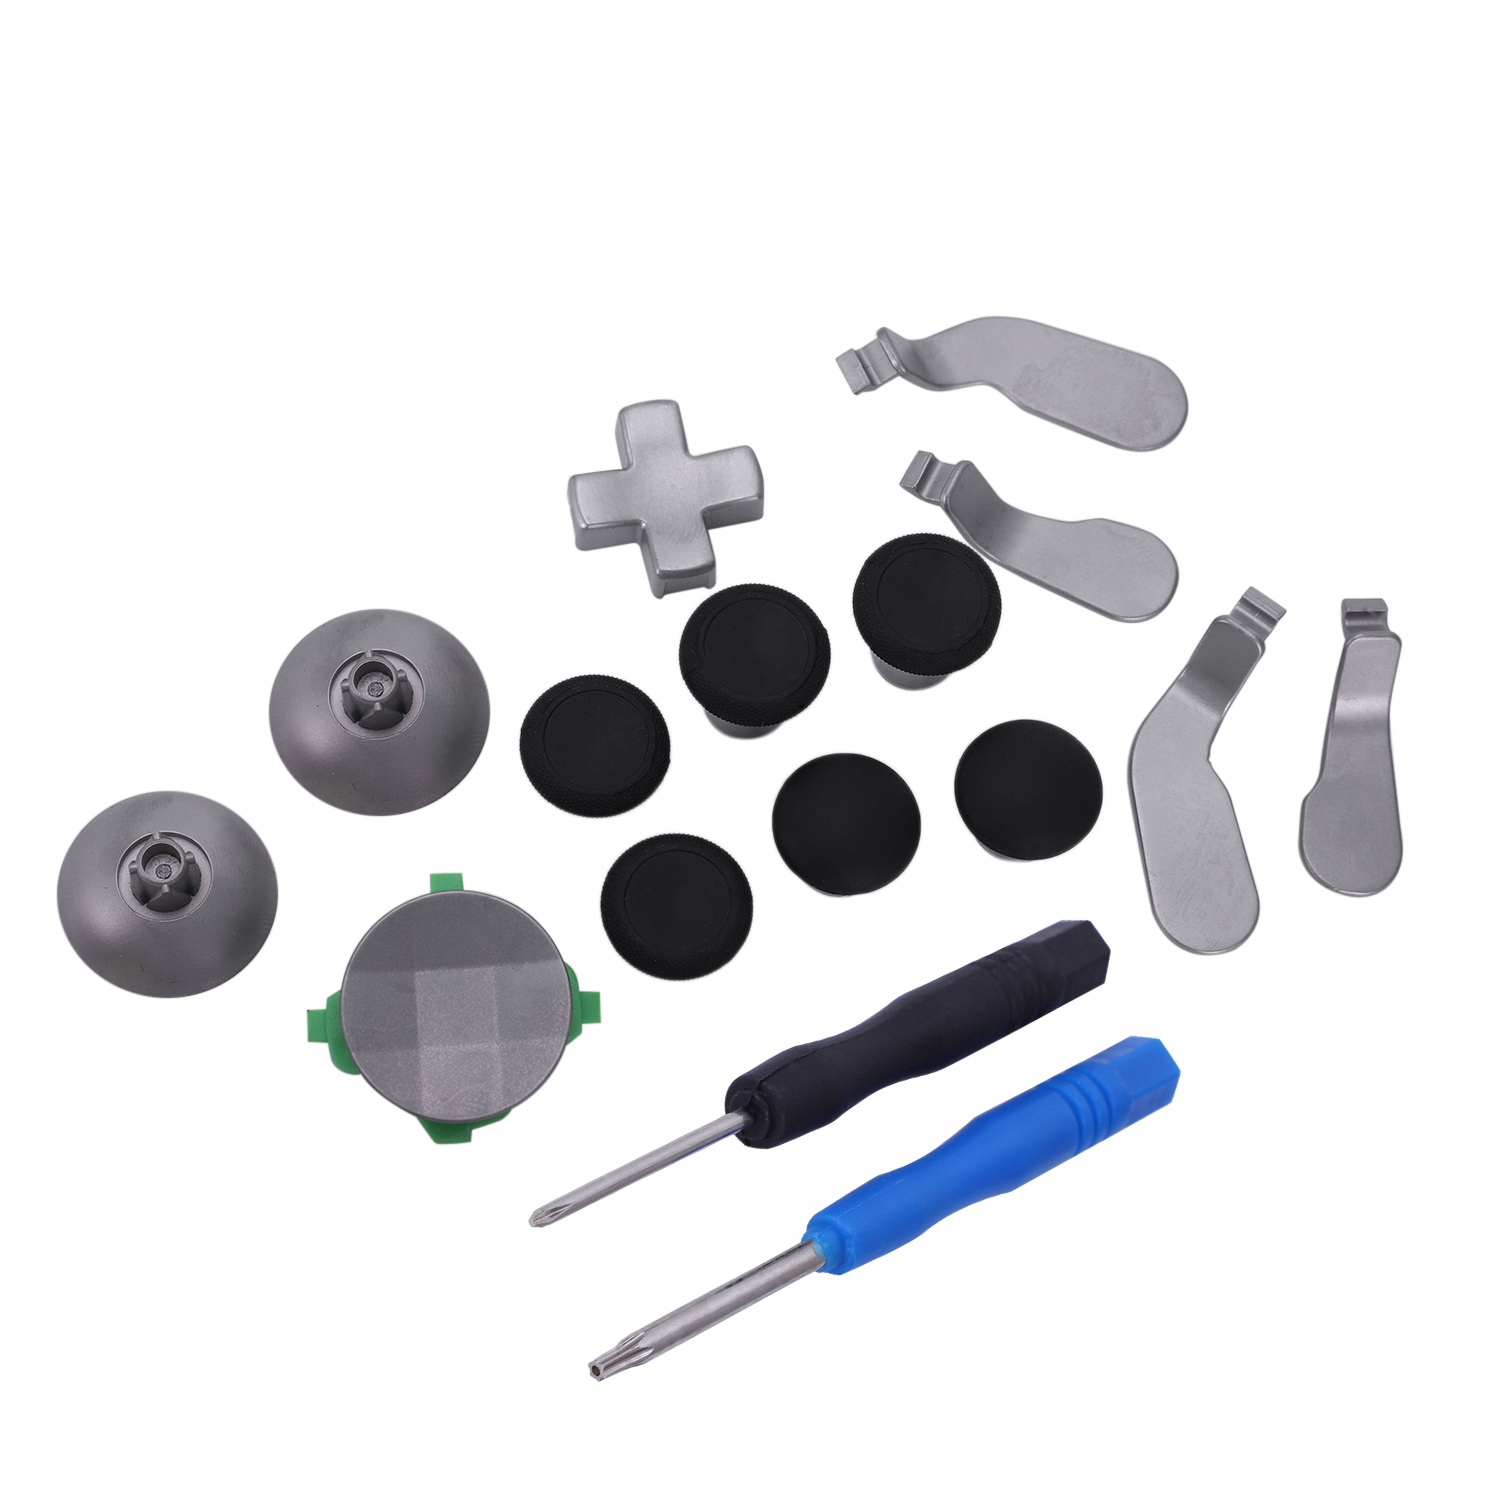 16-in-1 Replacement Parts with Controller Parts Compatible Accessories Swap Thumbsticks + 4 Paddles + 2 D-Pads Elite Controlle